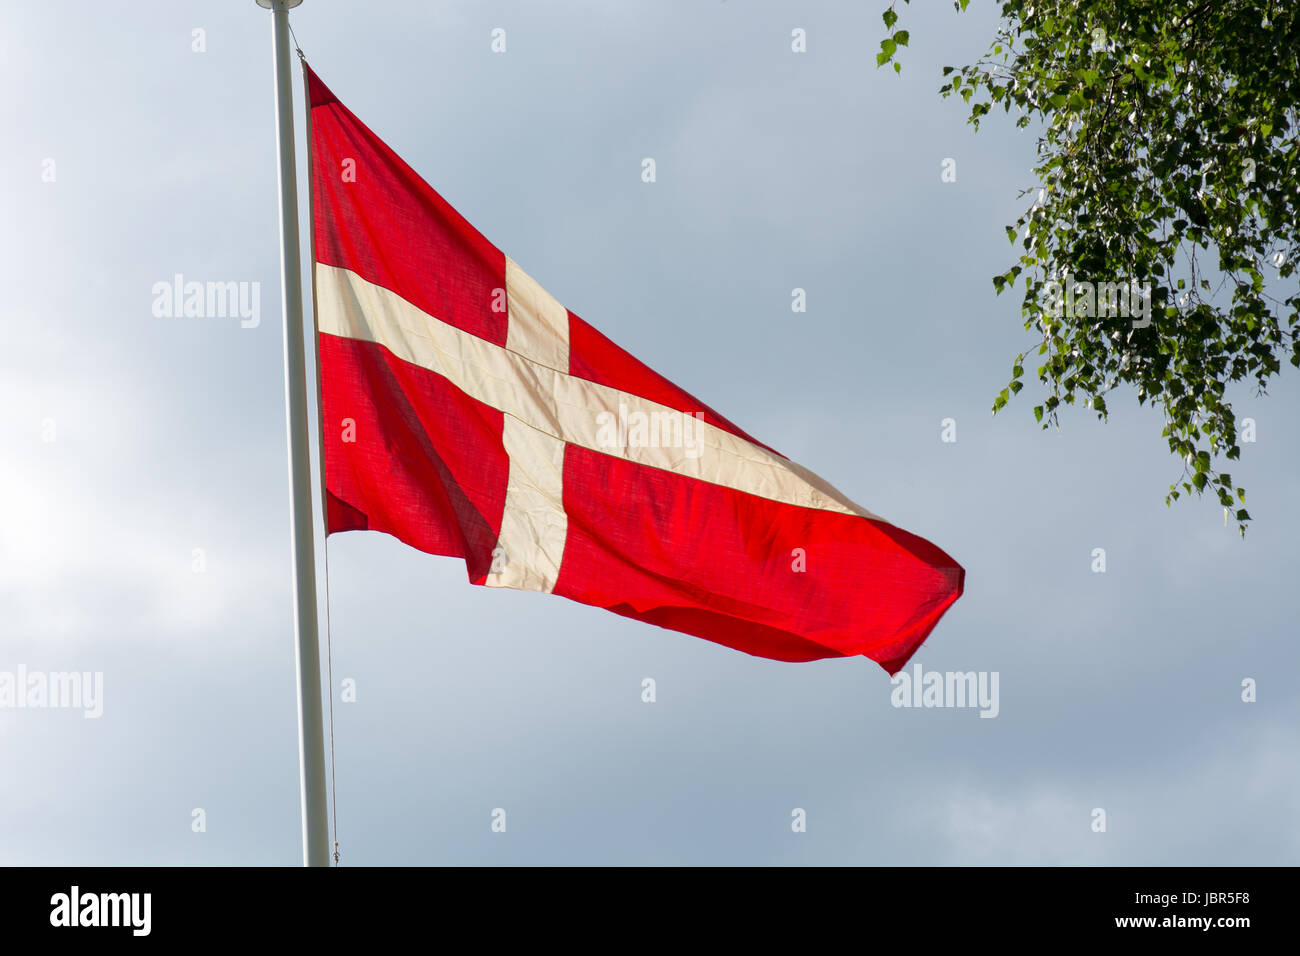 Danish flag on a flag pole in summer with gray clouds in the background - Stock Image